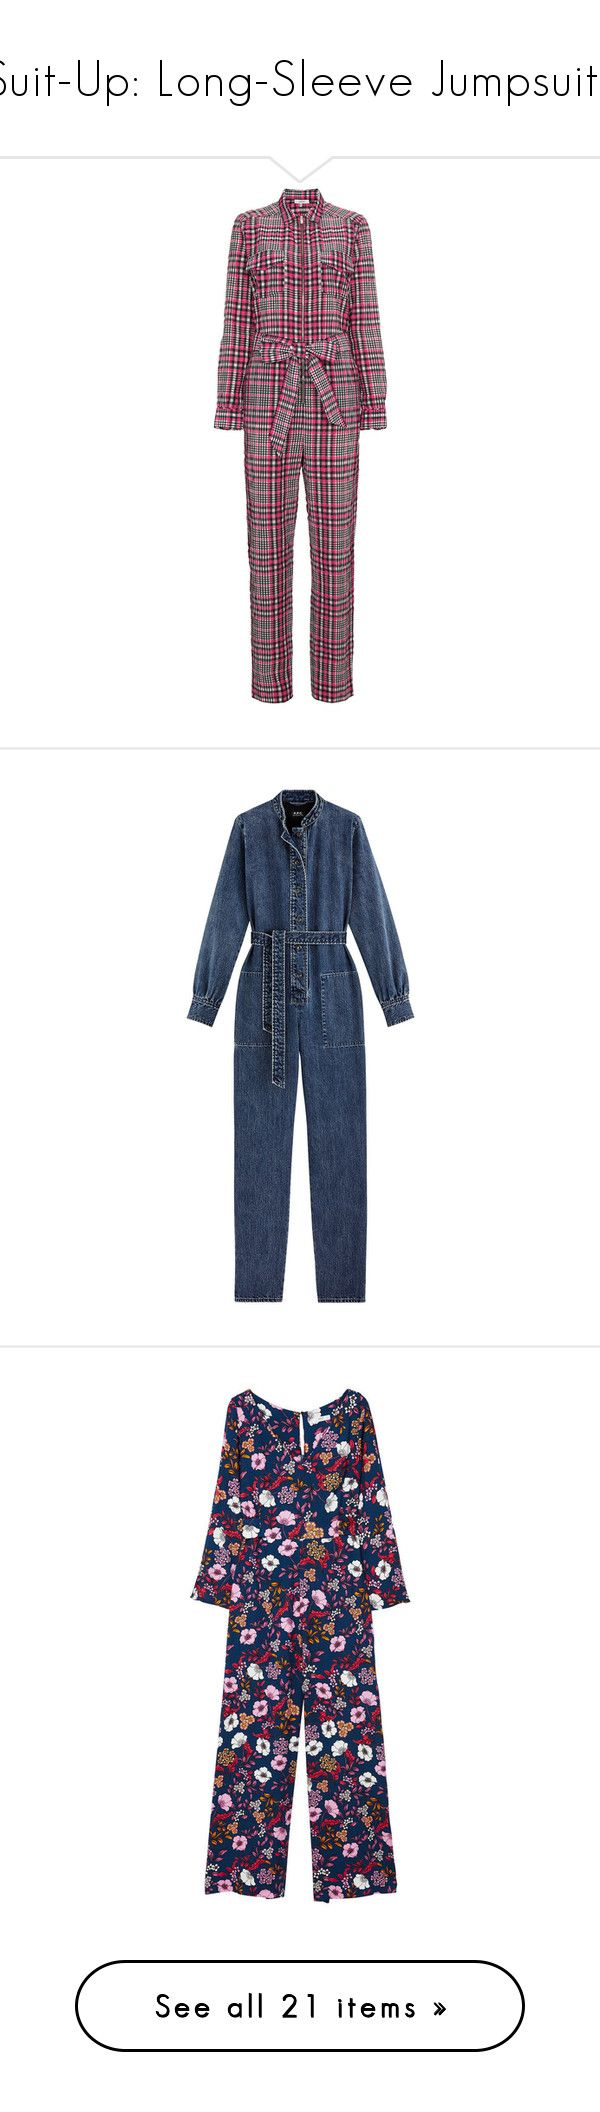 """""""Suit-Up: Long-Sleeve Jumpsuits"""" by polyvore-editorial ❤ liked on Polyvore featuring longsleevejumpsuits, jumpsuits, jump suit, colorful jumpsuit, ganni jumpsuit, purple jumpsuit, multi colored jumpsuit, denim jump suit, blue jump suit and blue denim jumpsuit"""